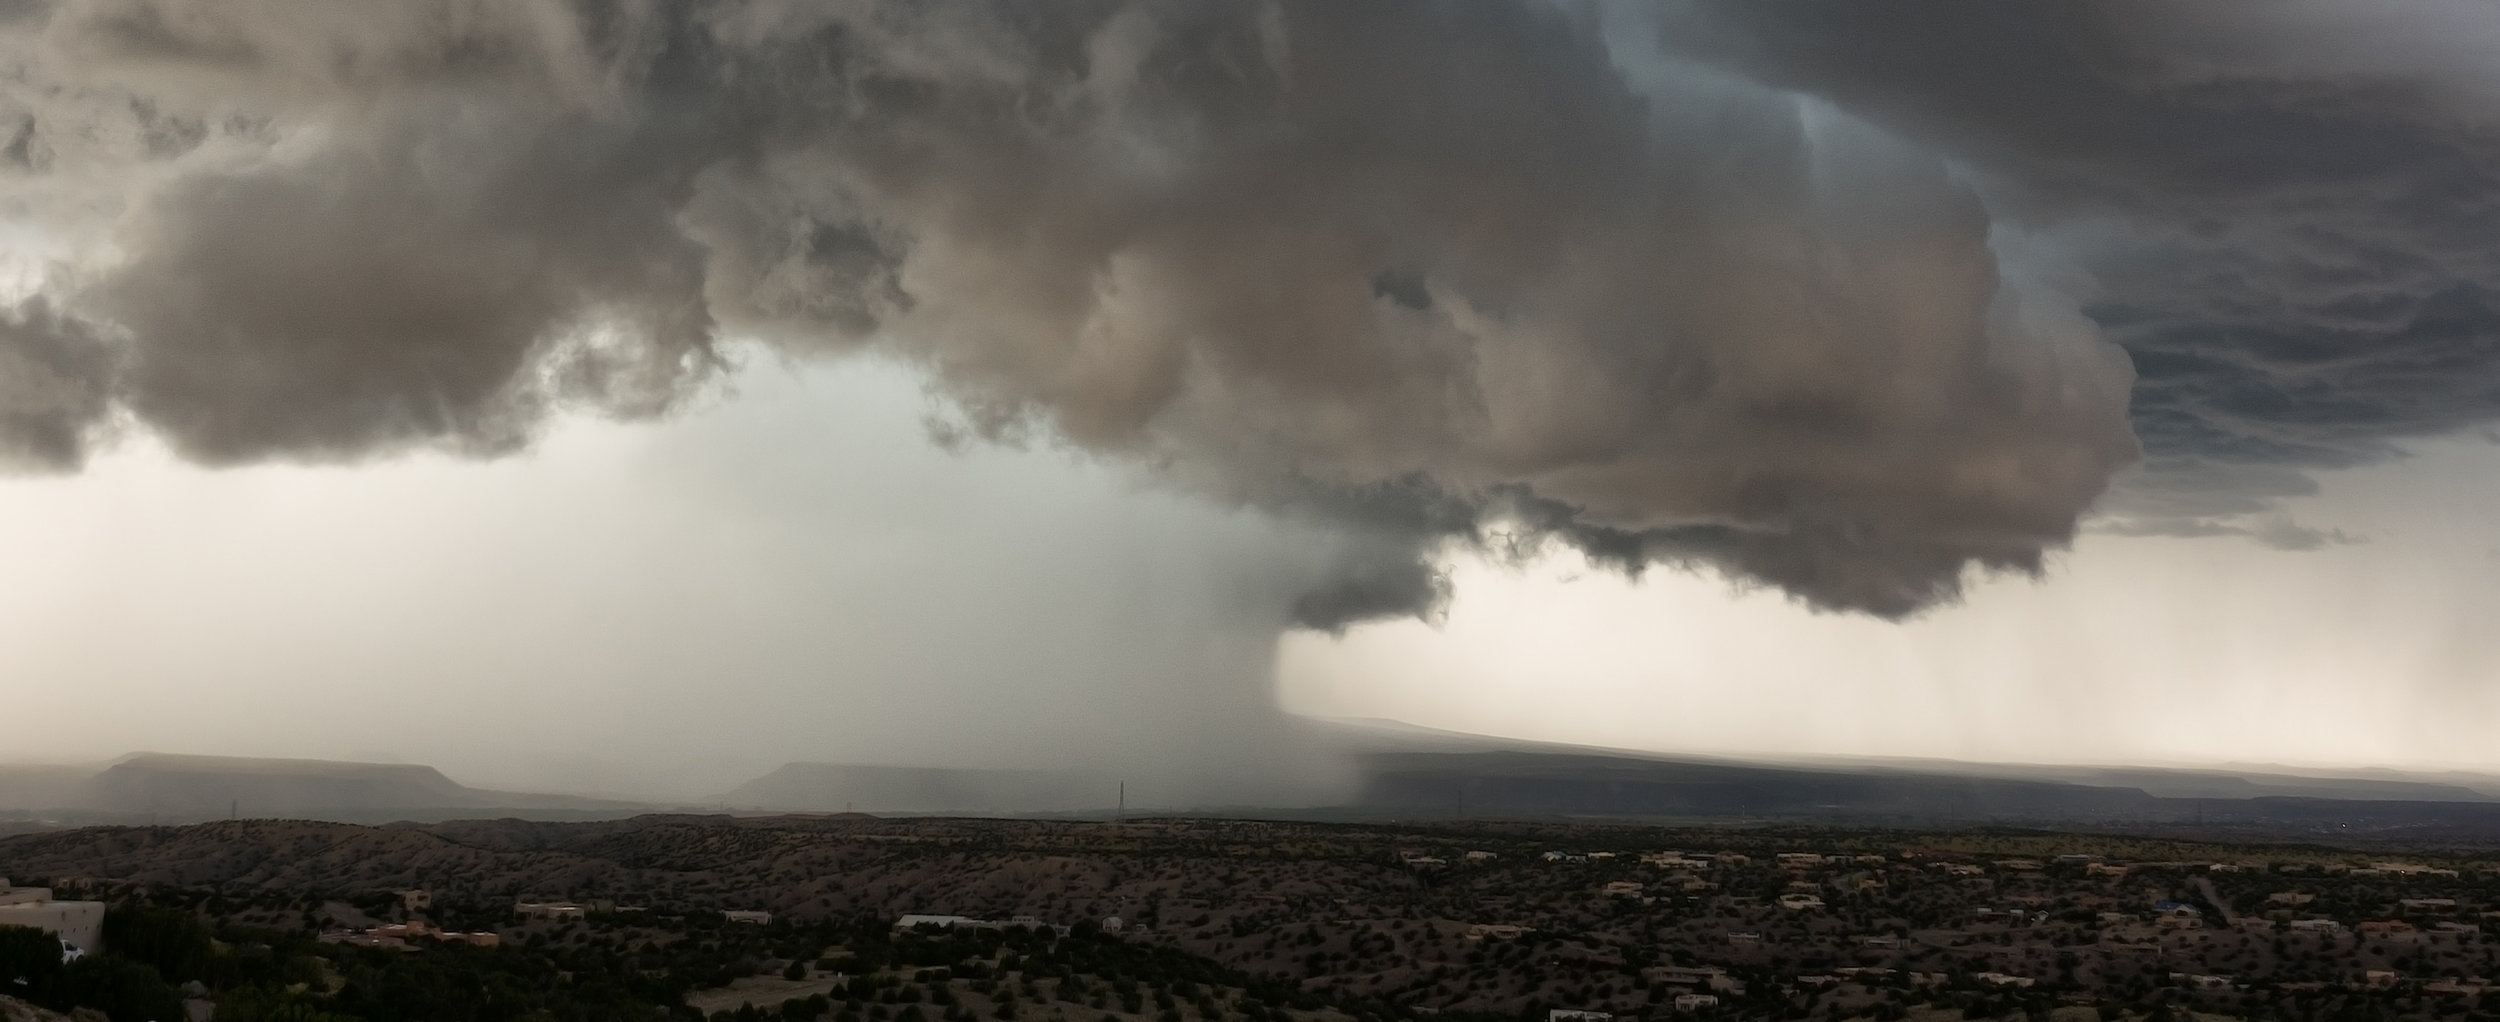 Photo by John Fowler - Storm over New Mexico